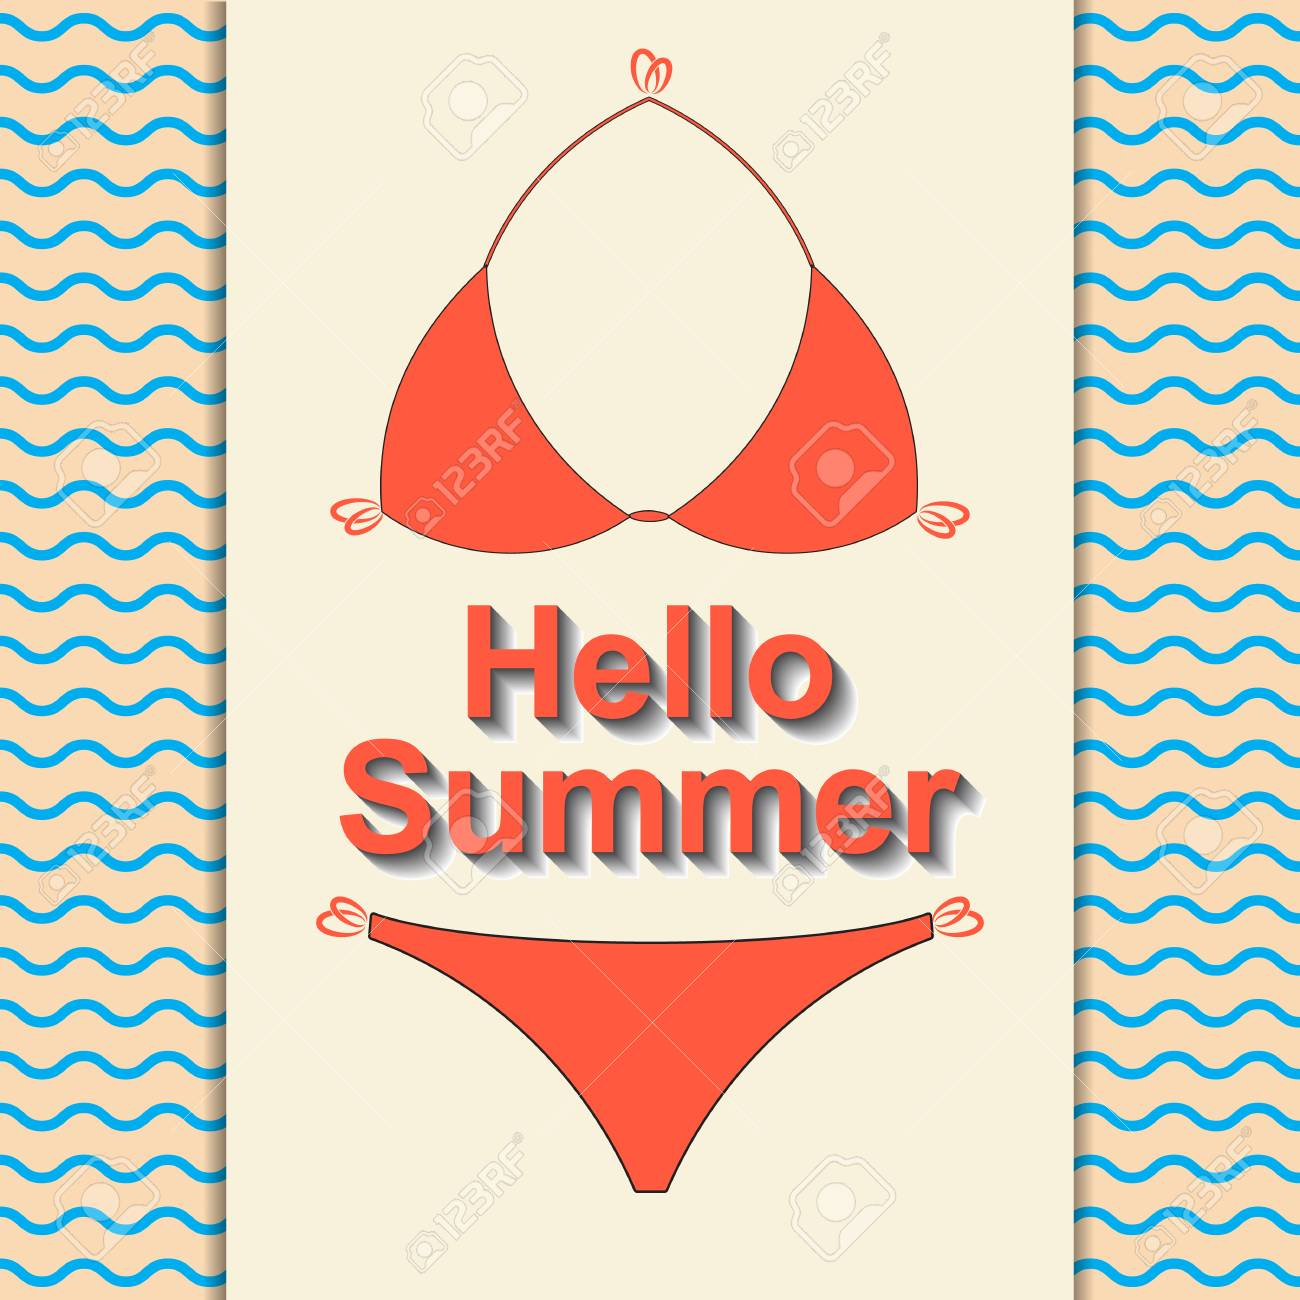 1bb1f9d88d Summertime concept. Hello summer travel. The trend calligraphy. Stylish red  Women s swimsuit on a light background